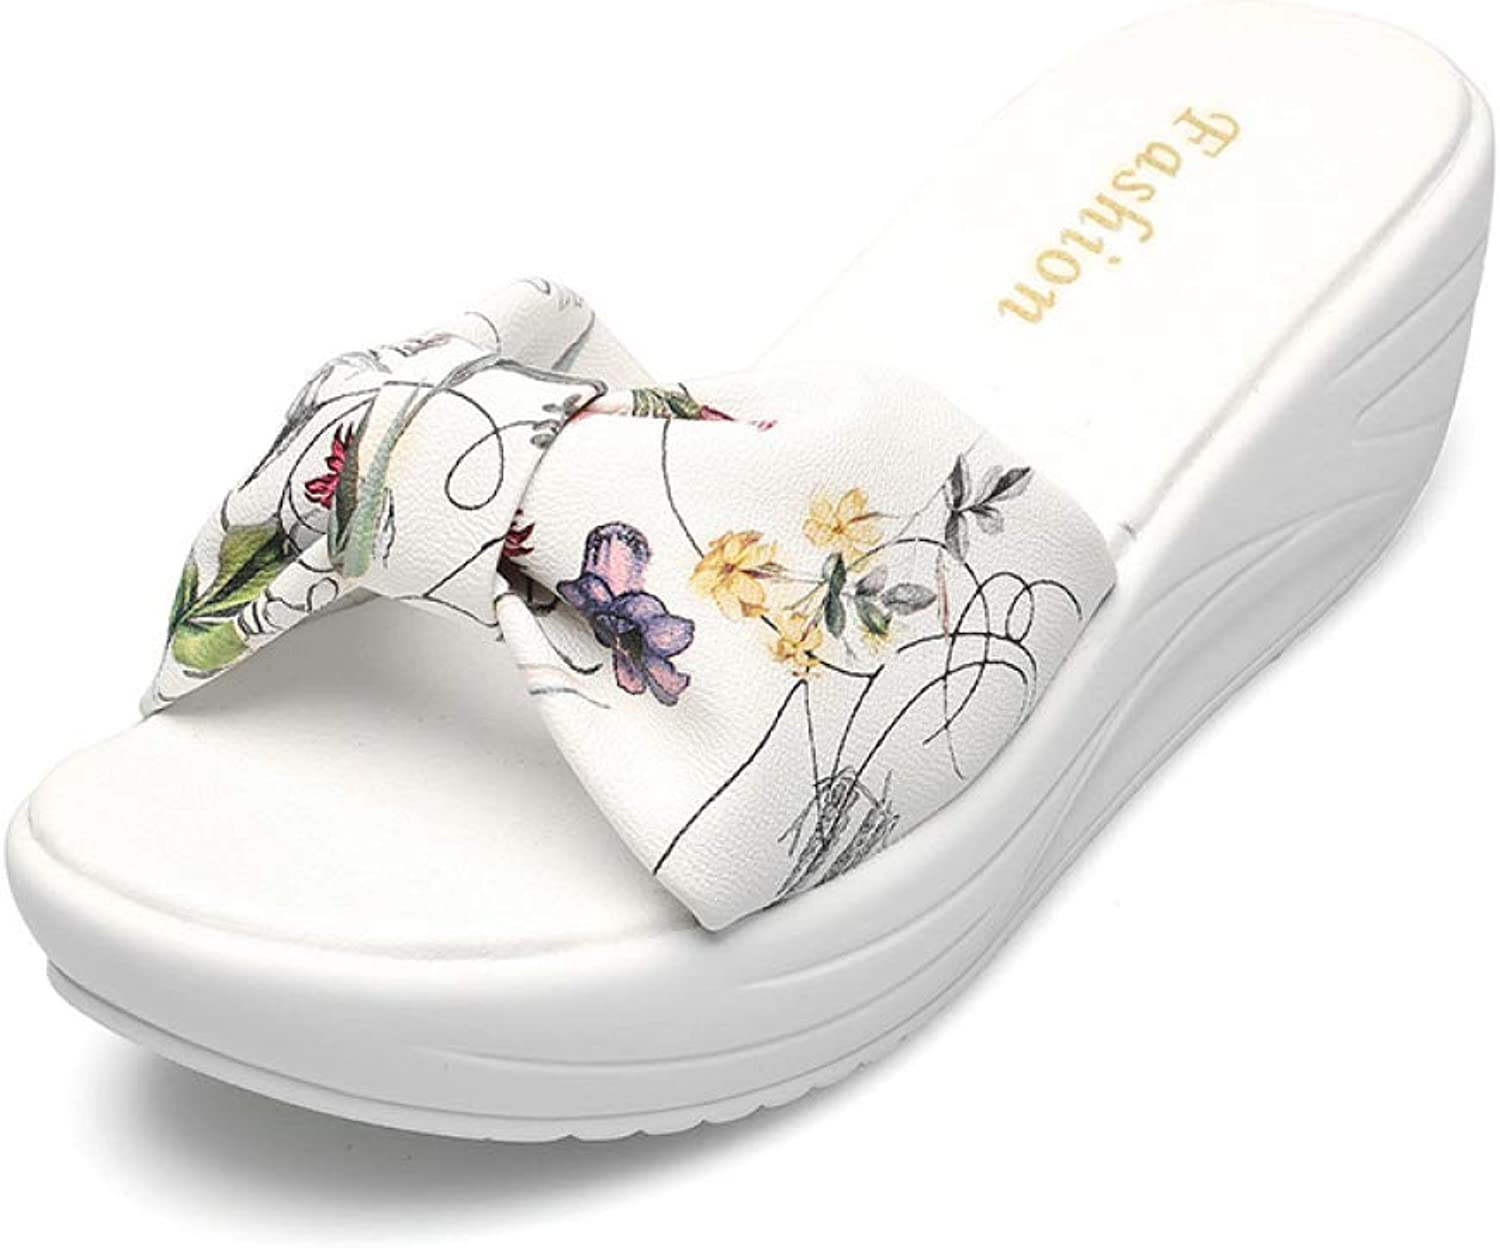 T-JULY Women's Platform Sandals Wedges Beach shoes Ladies Floral Casual Leisure Slip on Mules Summer Slippers